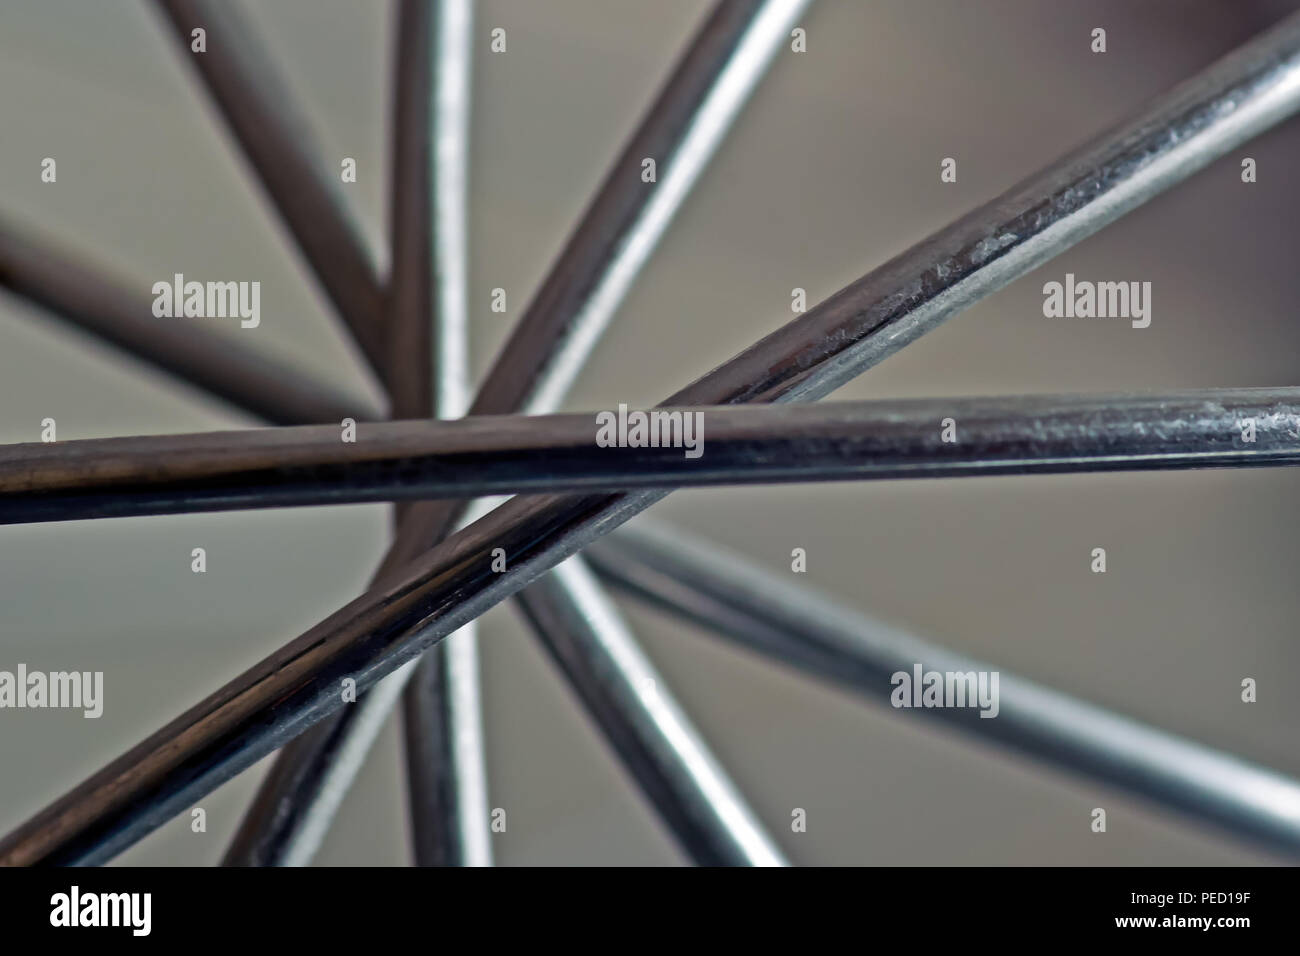 The nodal point of a wire whisk where the blades intersect and cross. - Stock Image